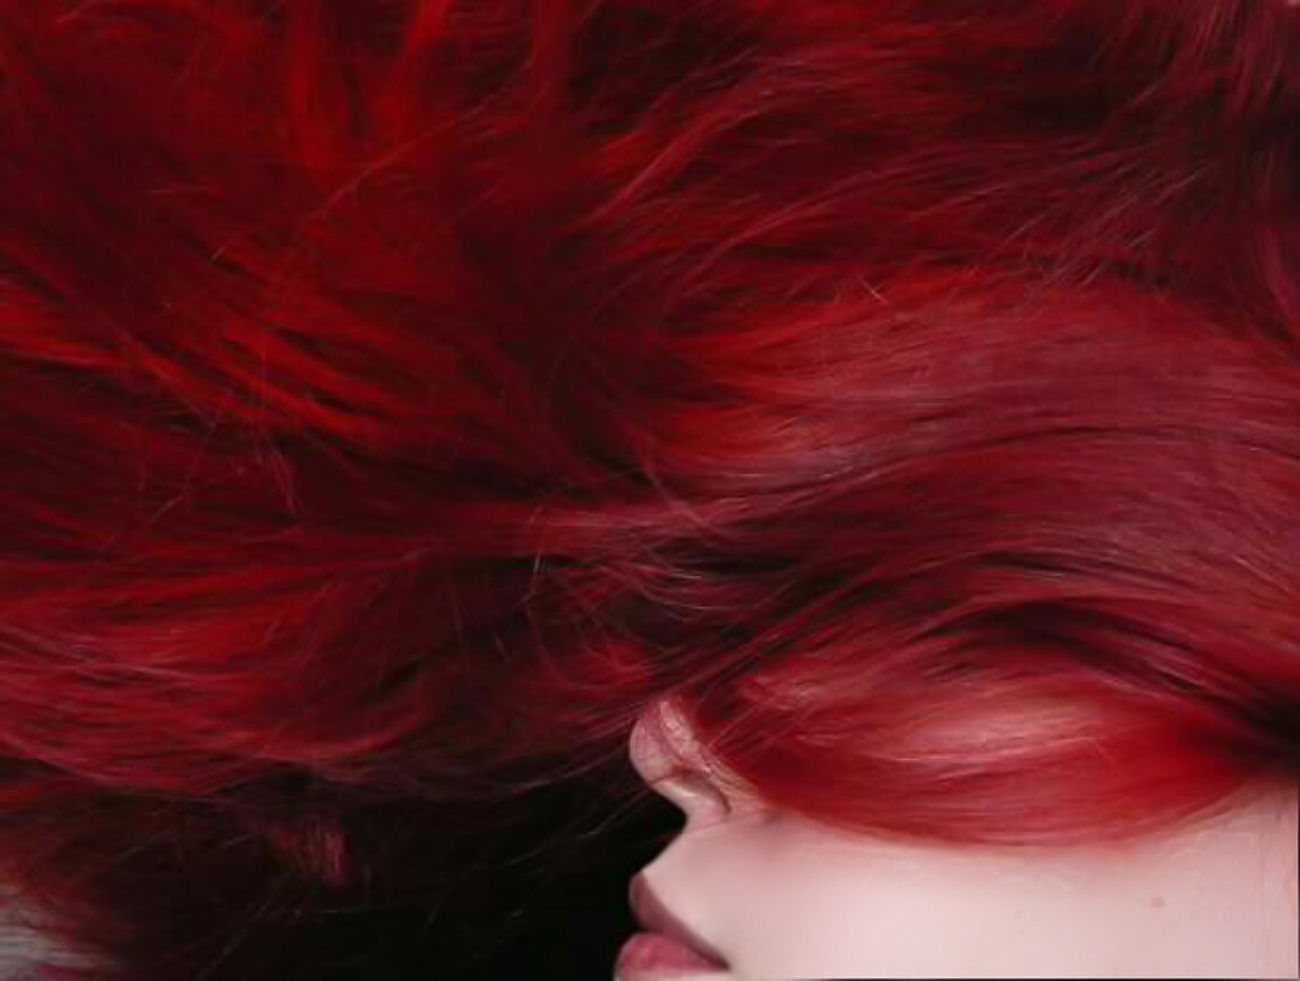 Let Your Hair Down Red Long Hair Close-up Part Of Red Hair Lips Pillar Red Woman Human Face Young Adult Femininity Redhead Person